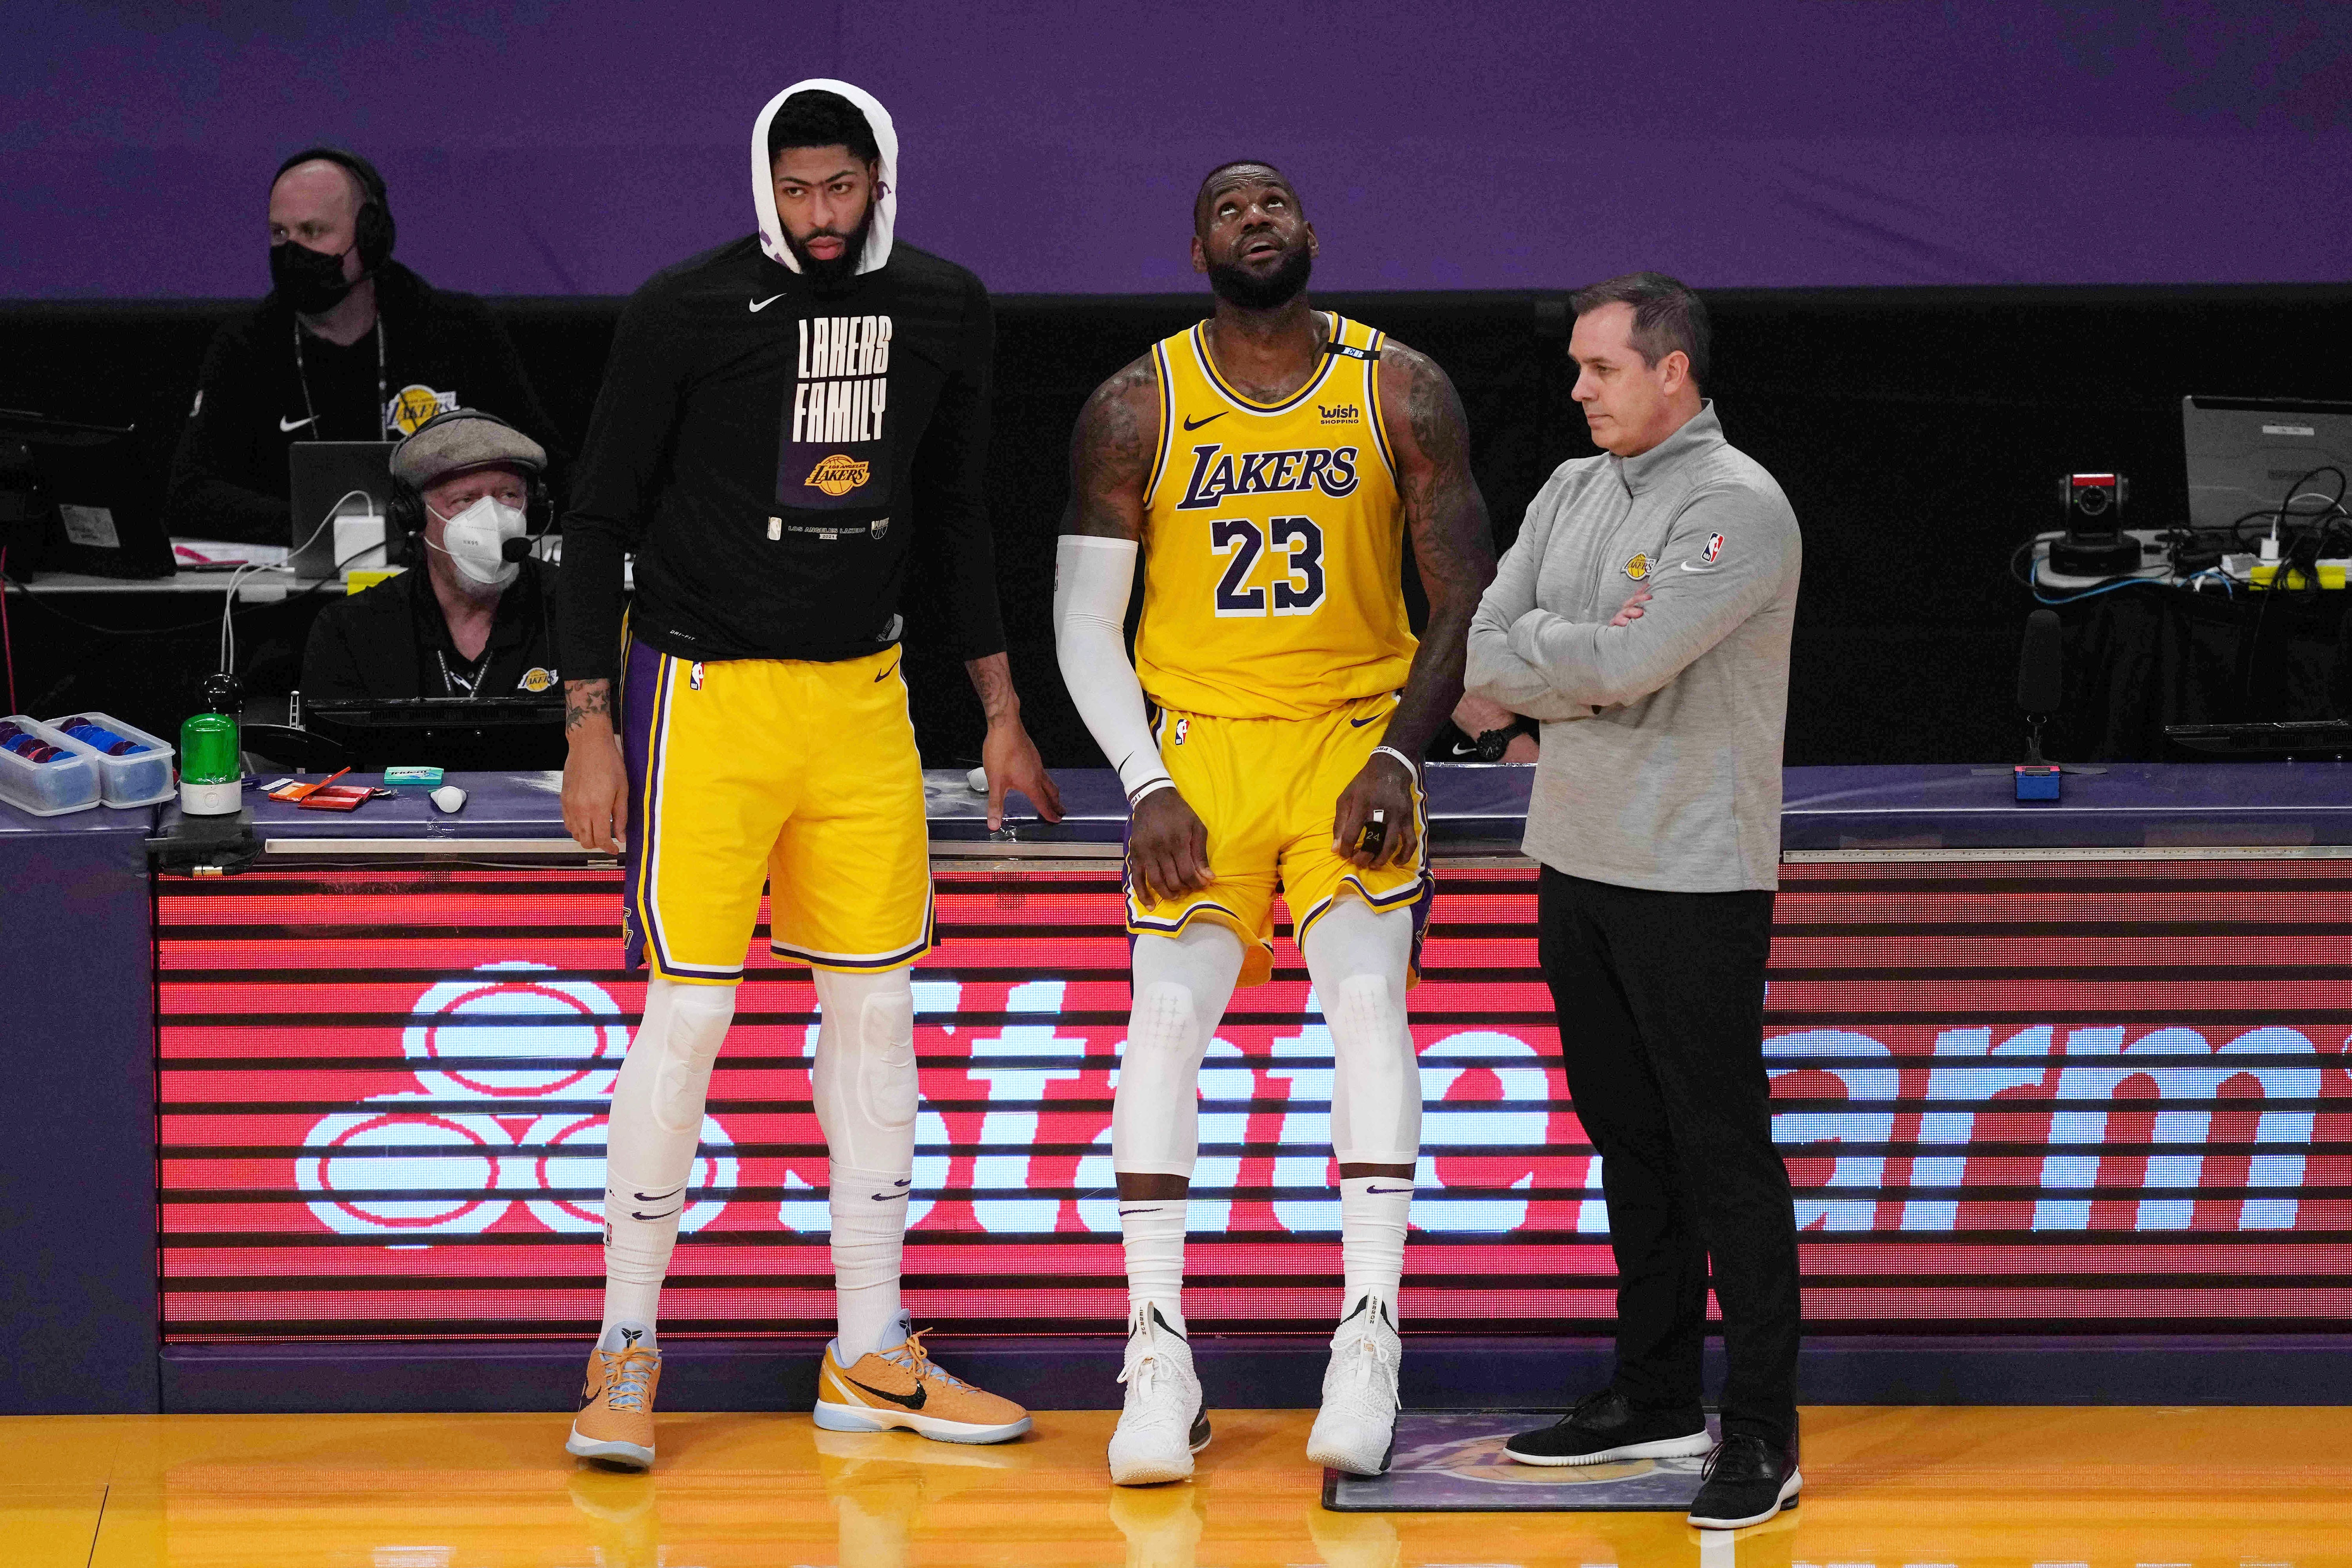 Opinion: Lakers' early exit more a result of compressed season and injuries than roster fit